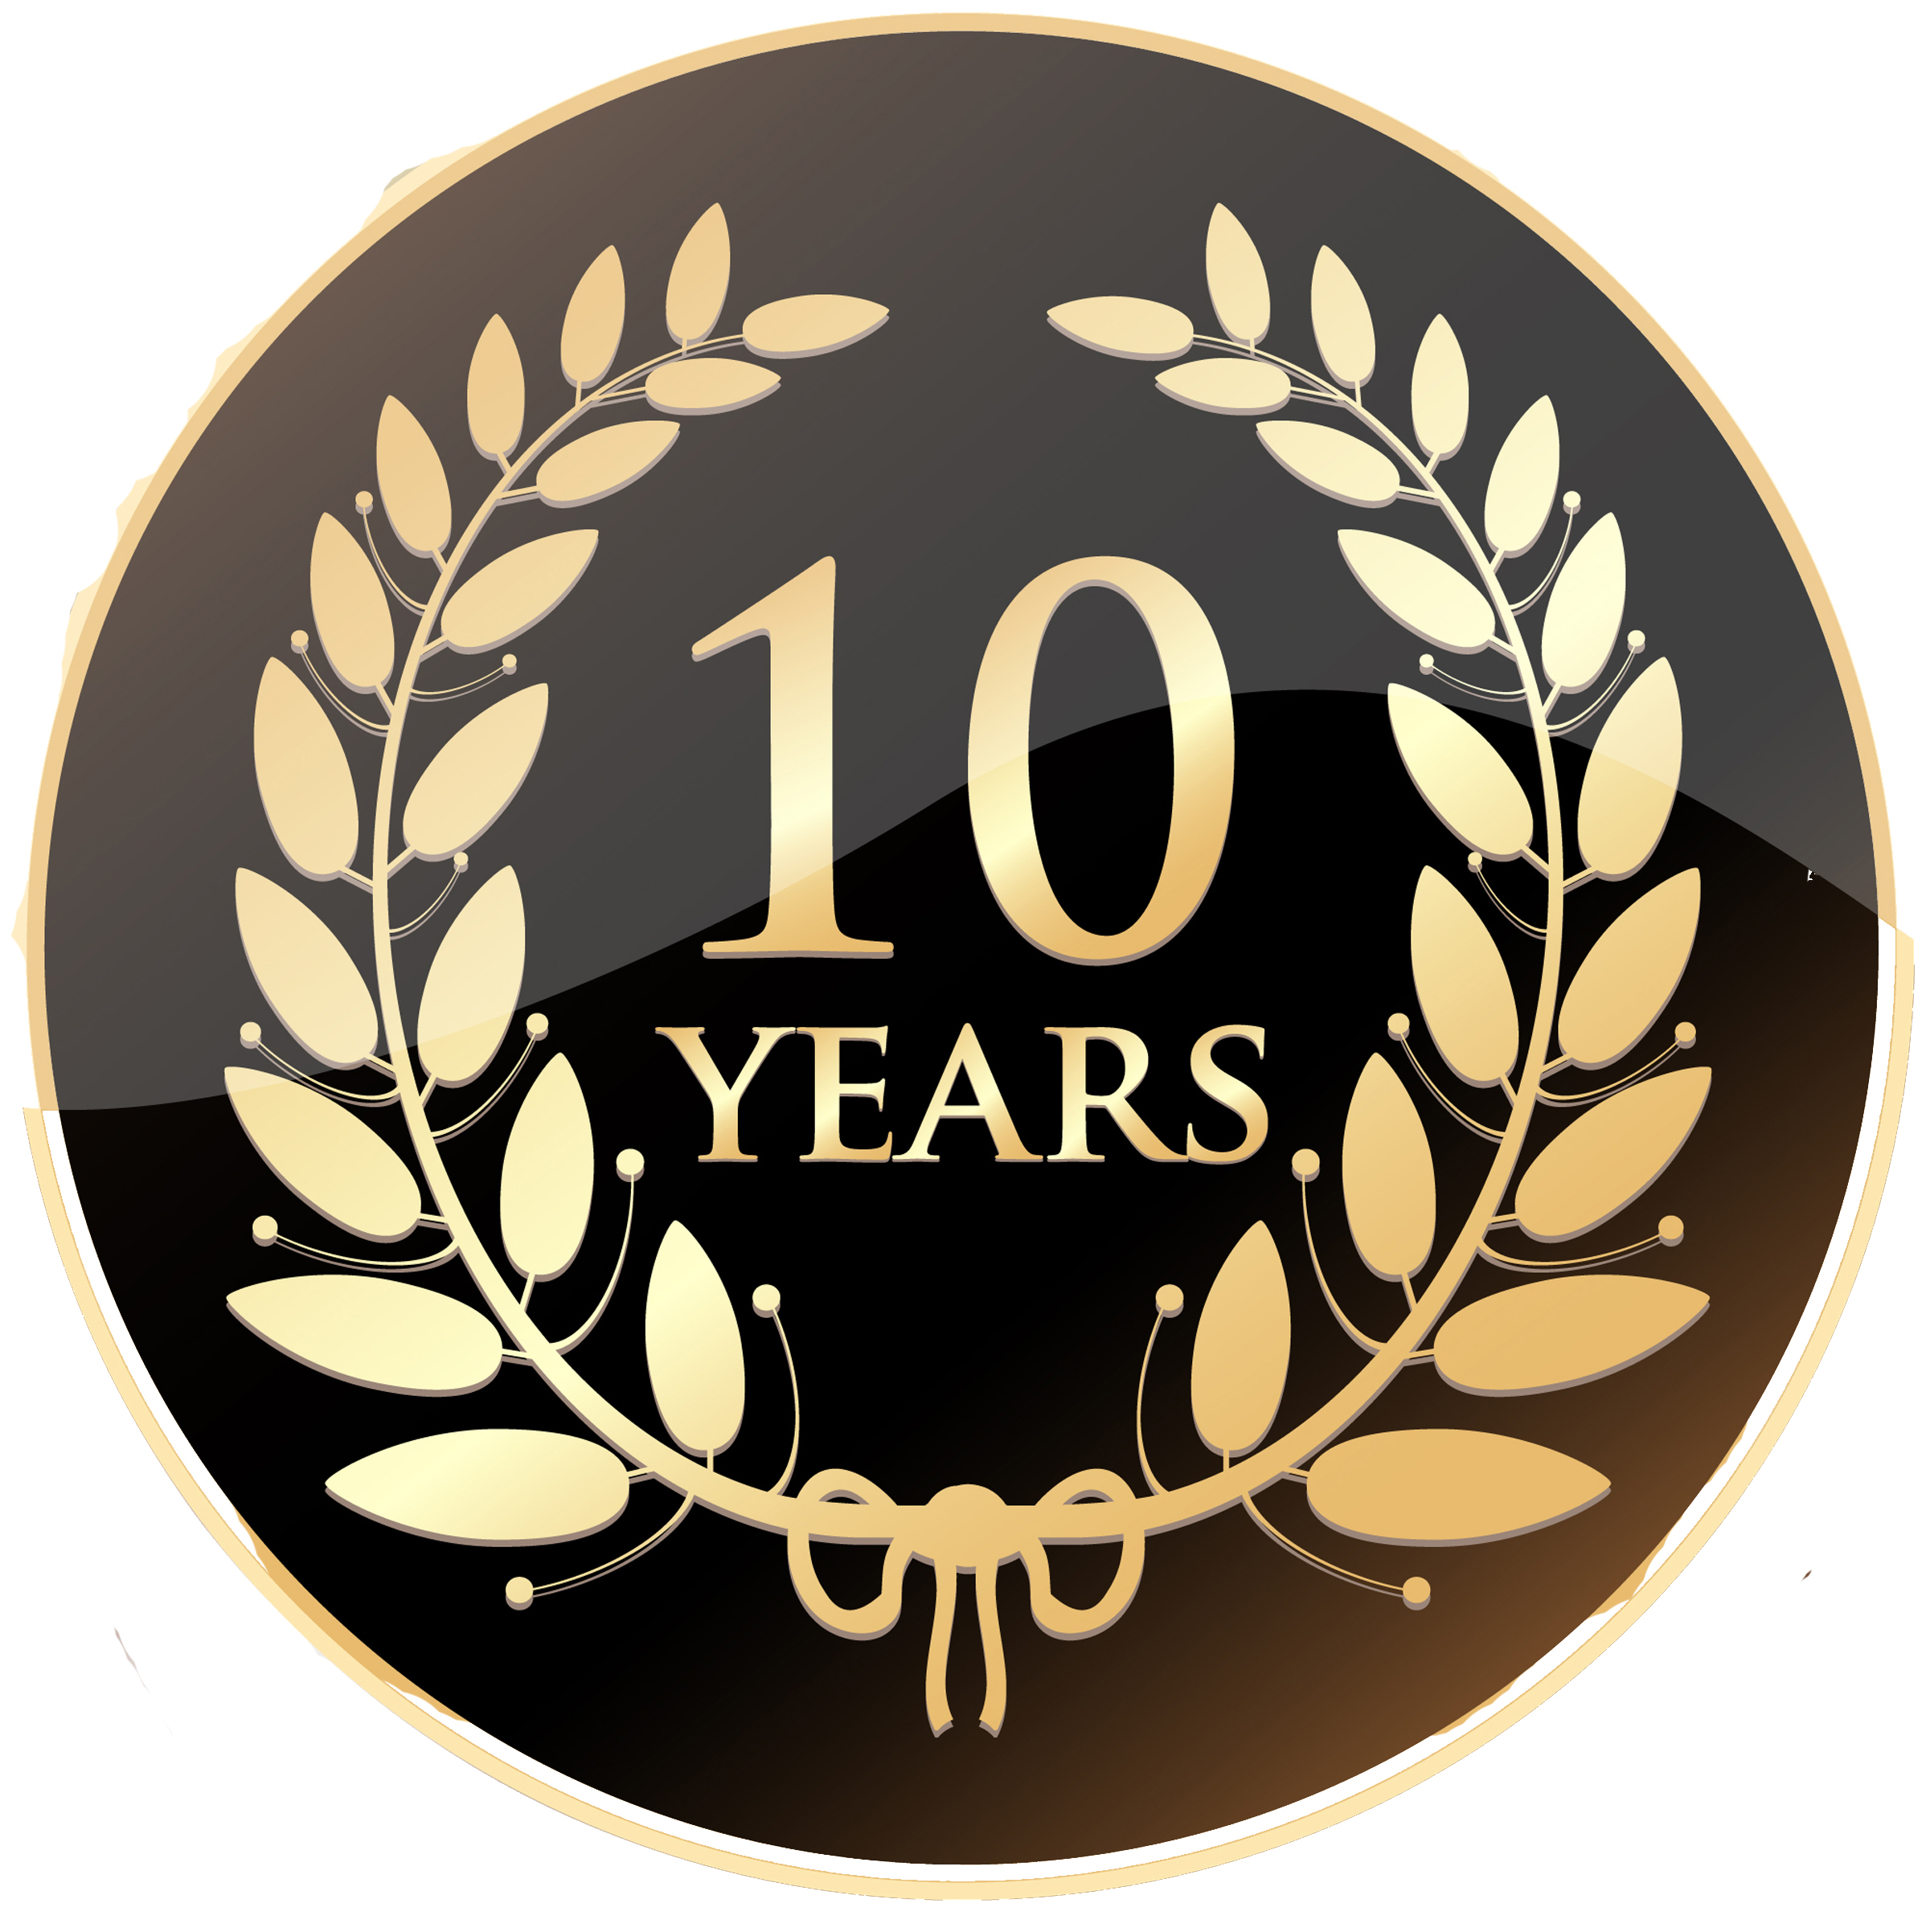 Quotes about 10 years of service (25 quotes)